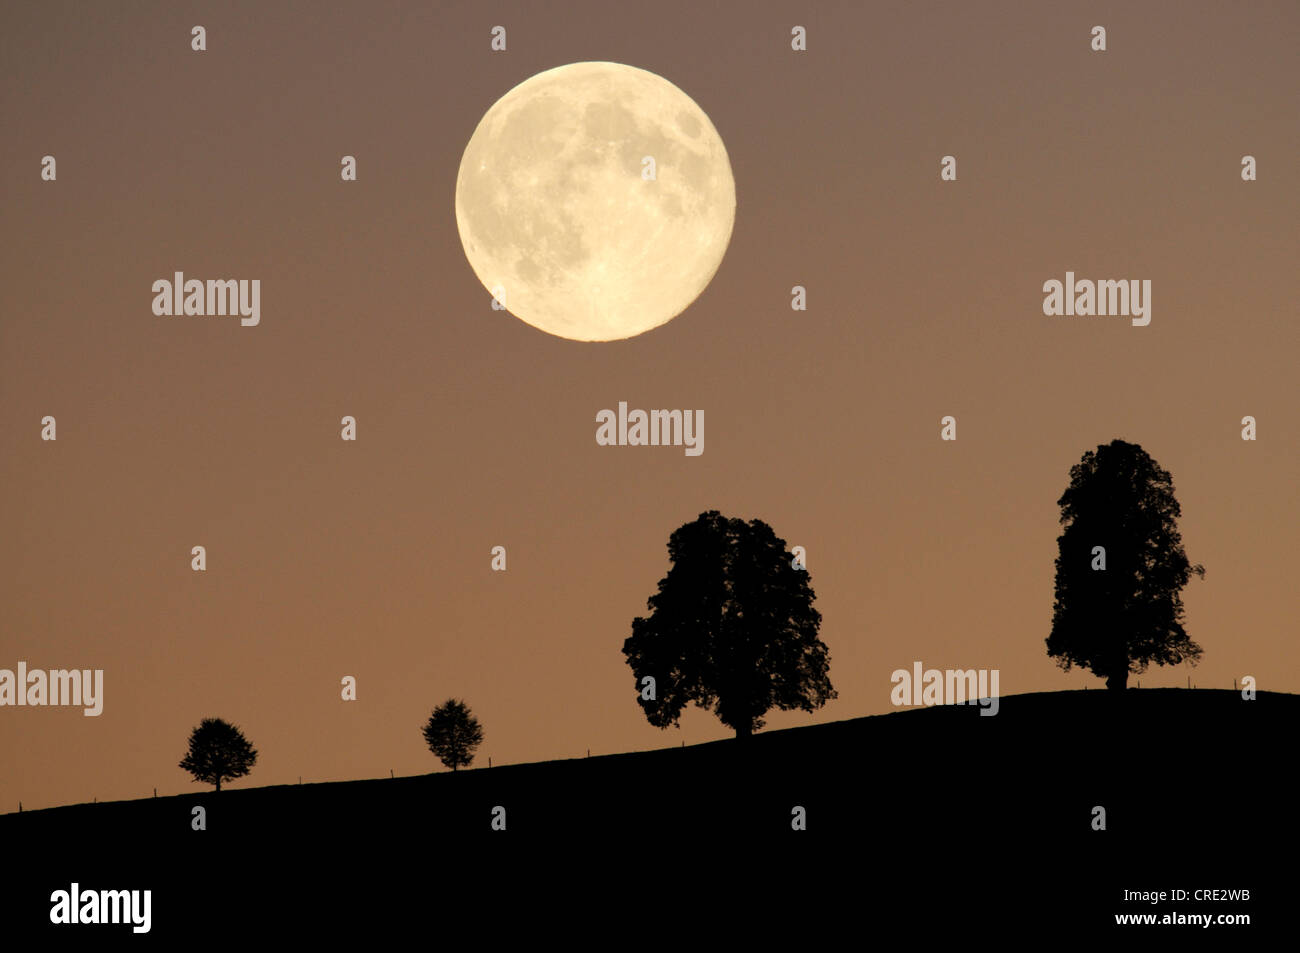 Silhouettes of trees in the light of the full moon, Hirzel, Switzerland, Europe - Stock Image